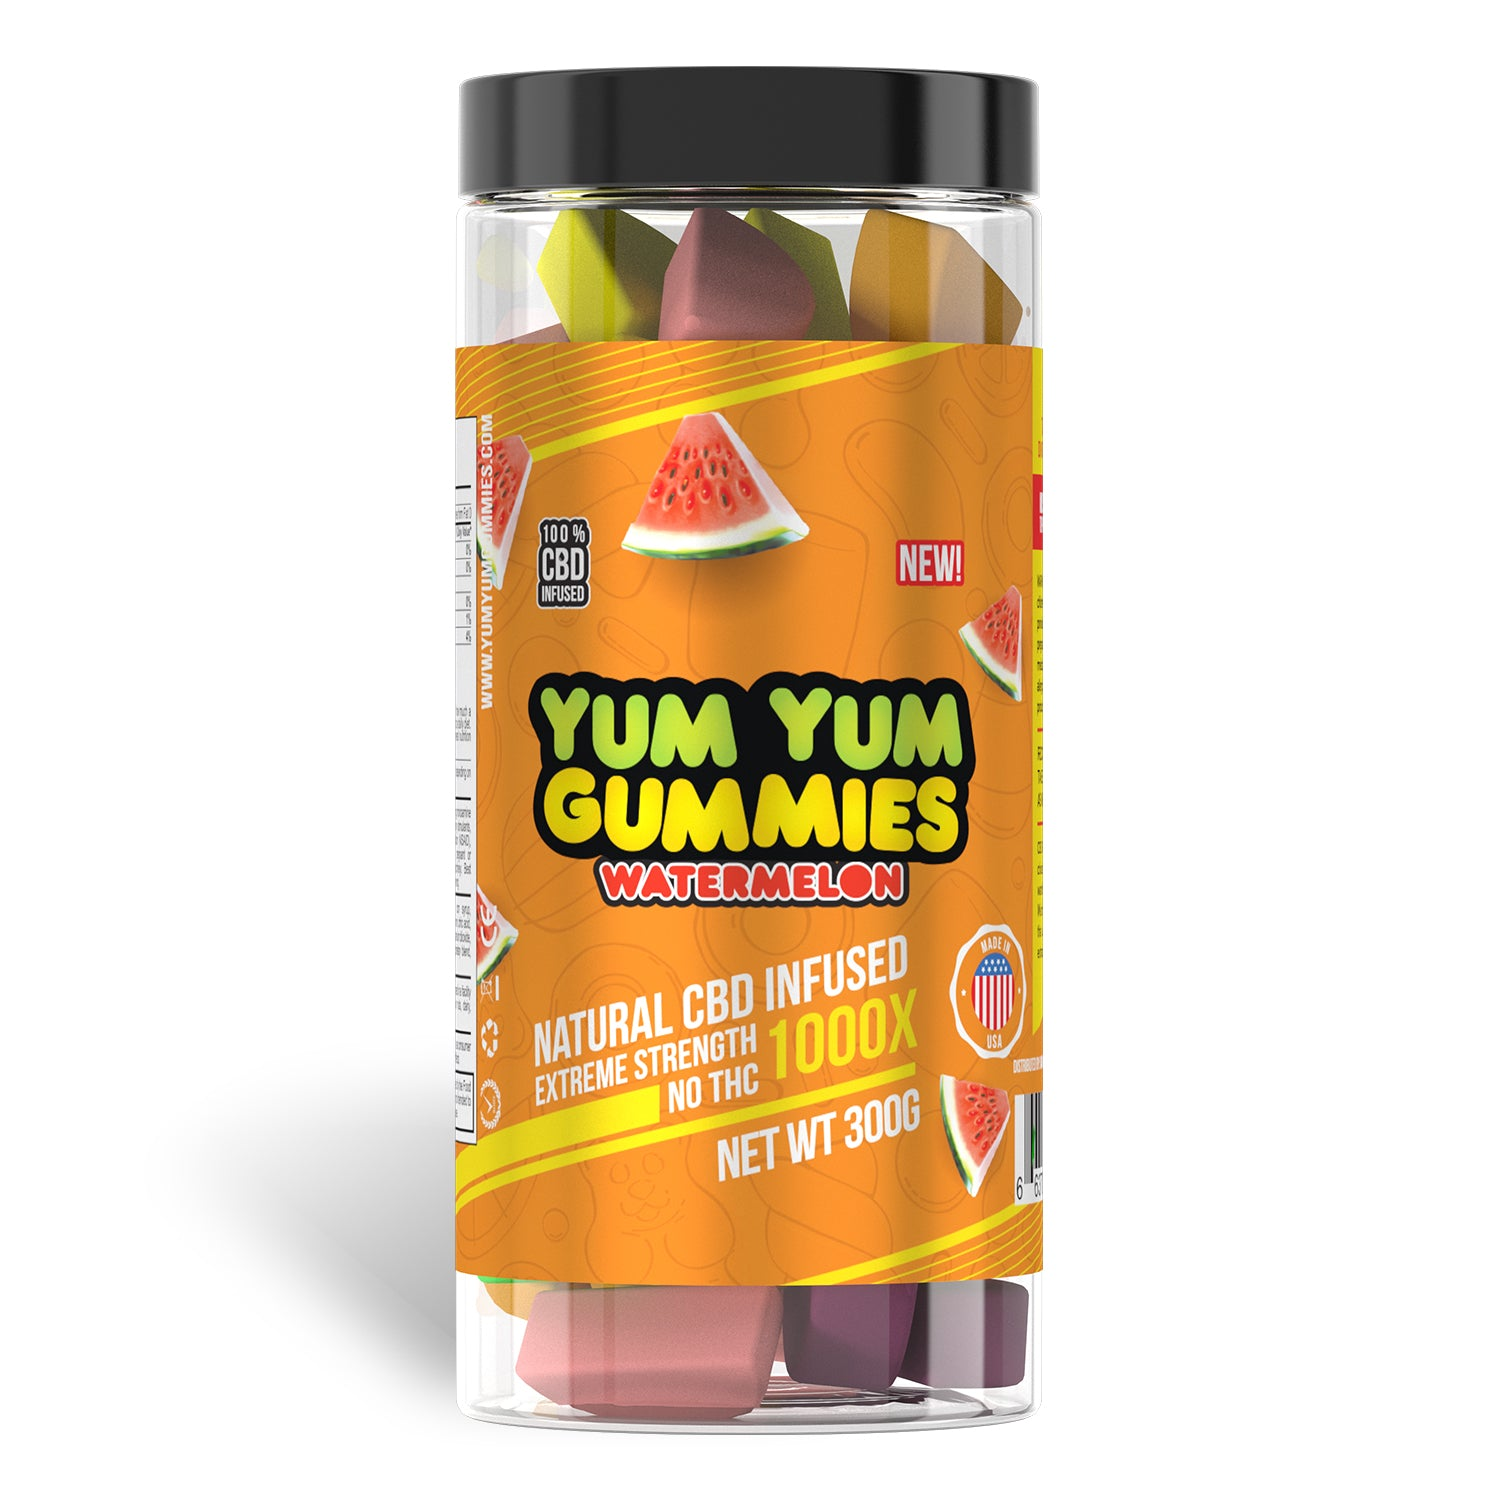 Yum Yum Gummies 1000x - CBD Infused Gummies [Edible Candy] - My CBD Mall